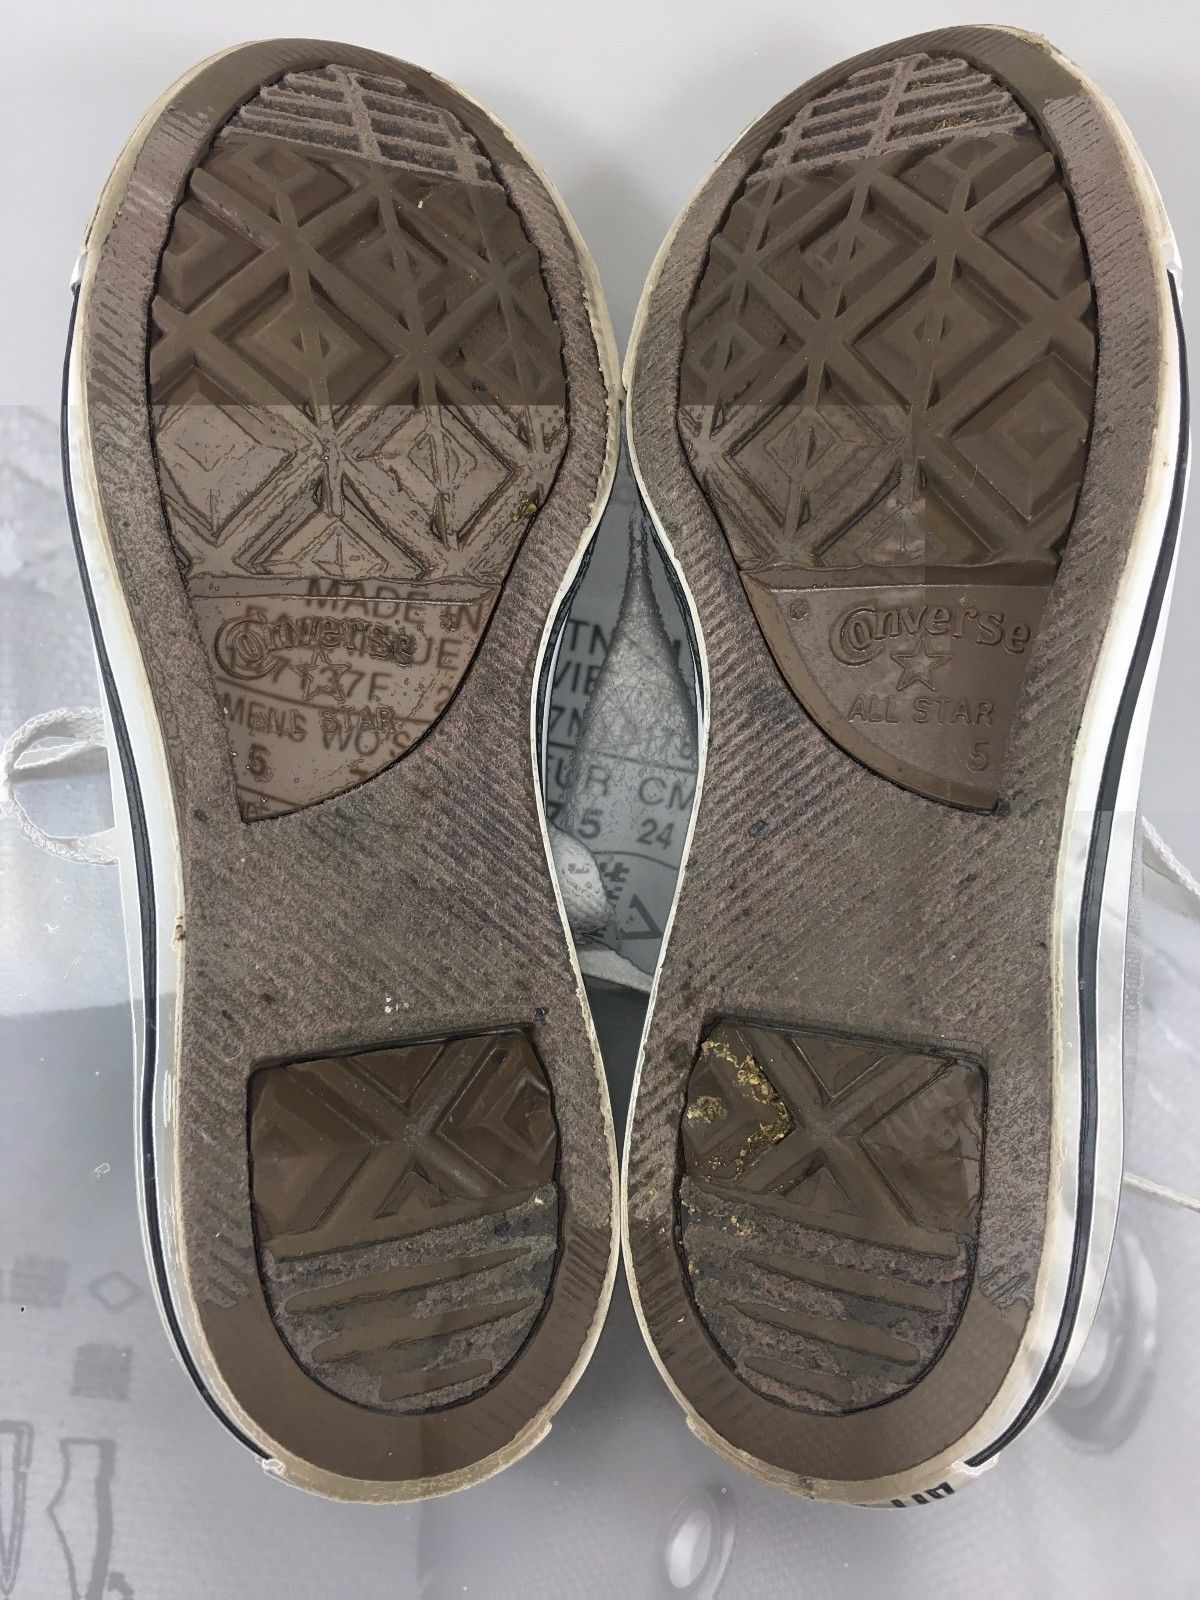 Converse All Star 5 Mens 7 Womens EU 37.5 Gray Canvas Sneakers Gym Shoes